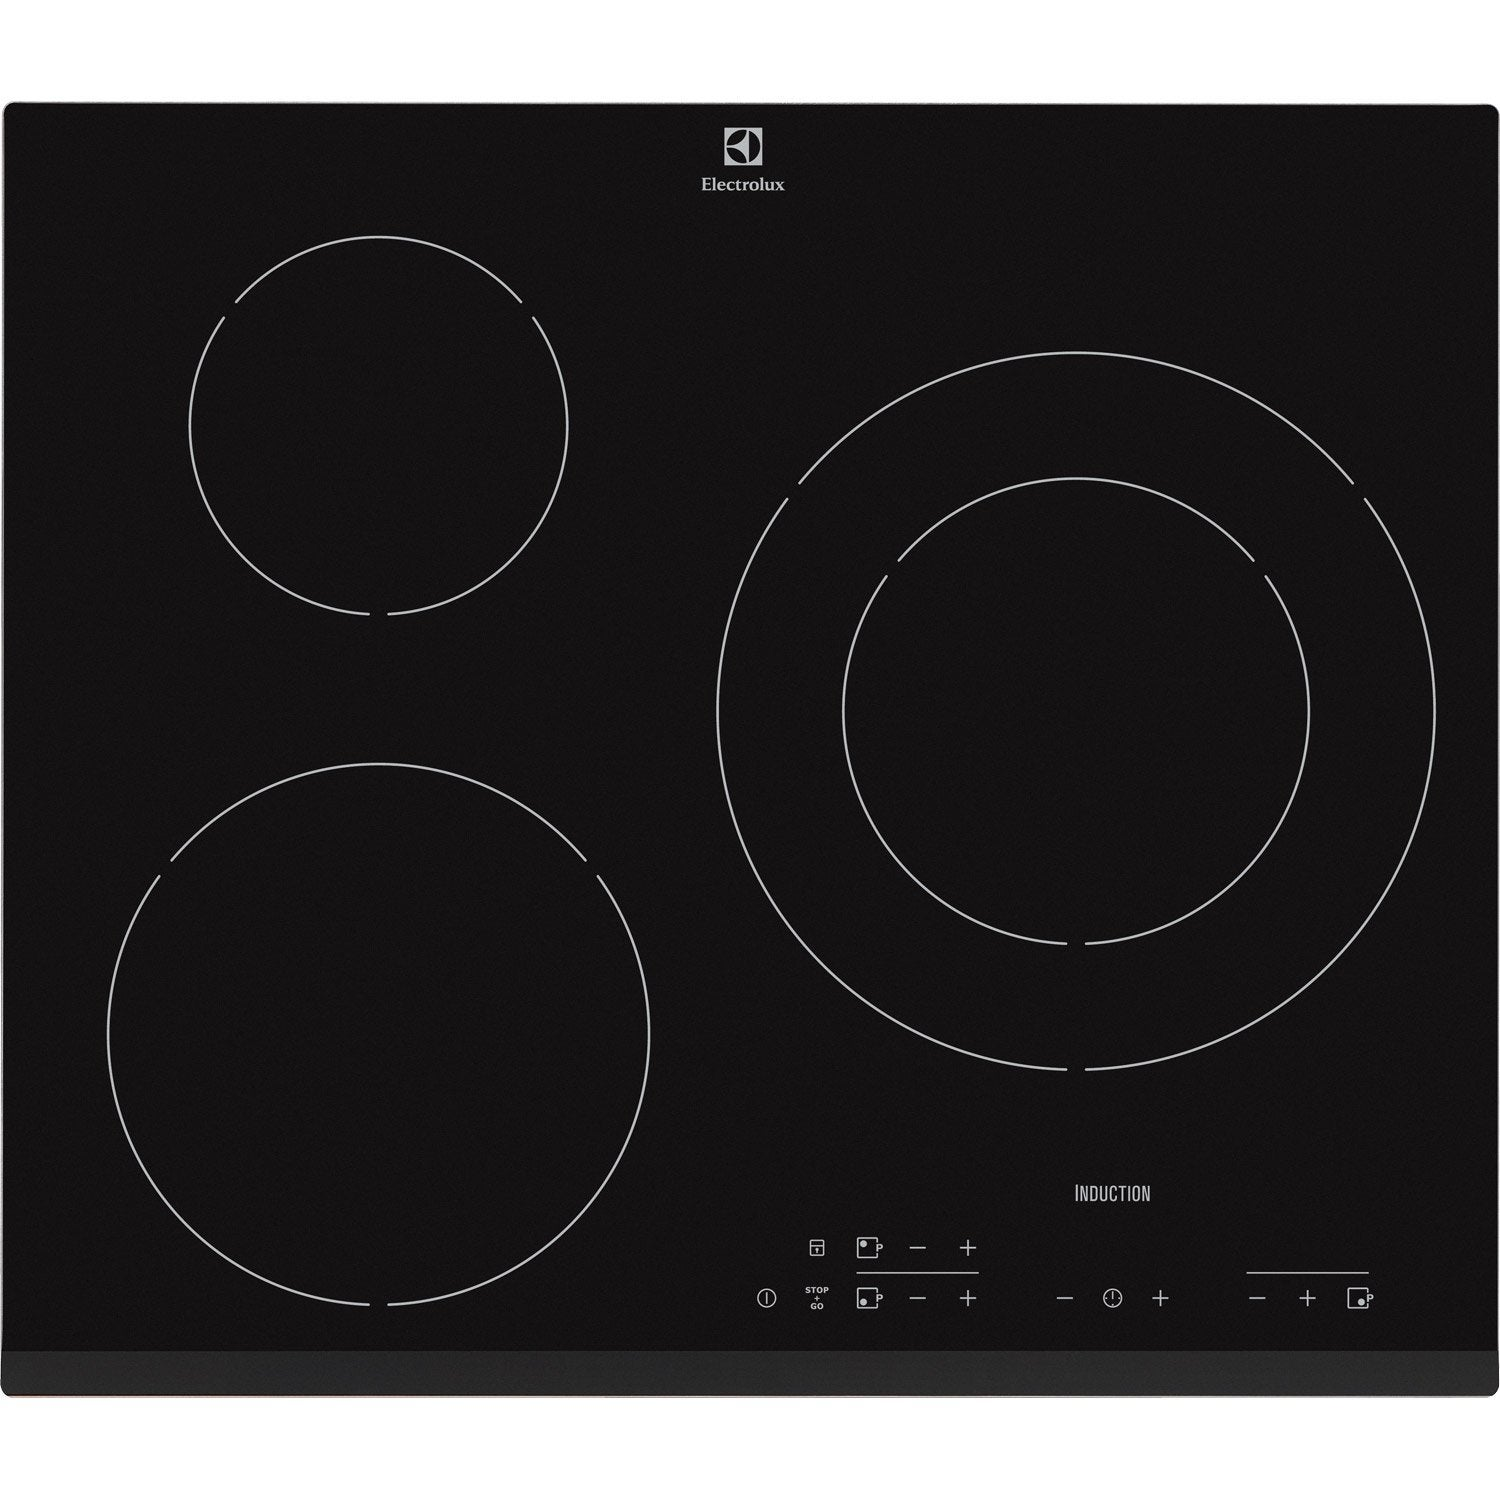 Plaque induction 3 foyers noir electrolux e6223hfk - Electrolux ehl7640fok table induction ...